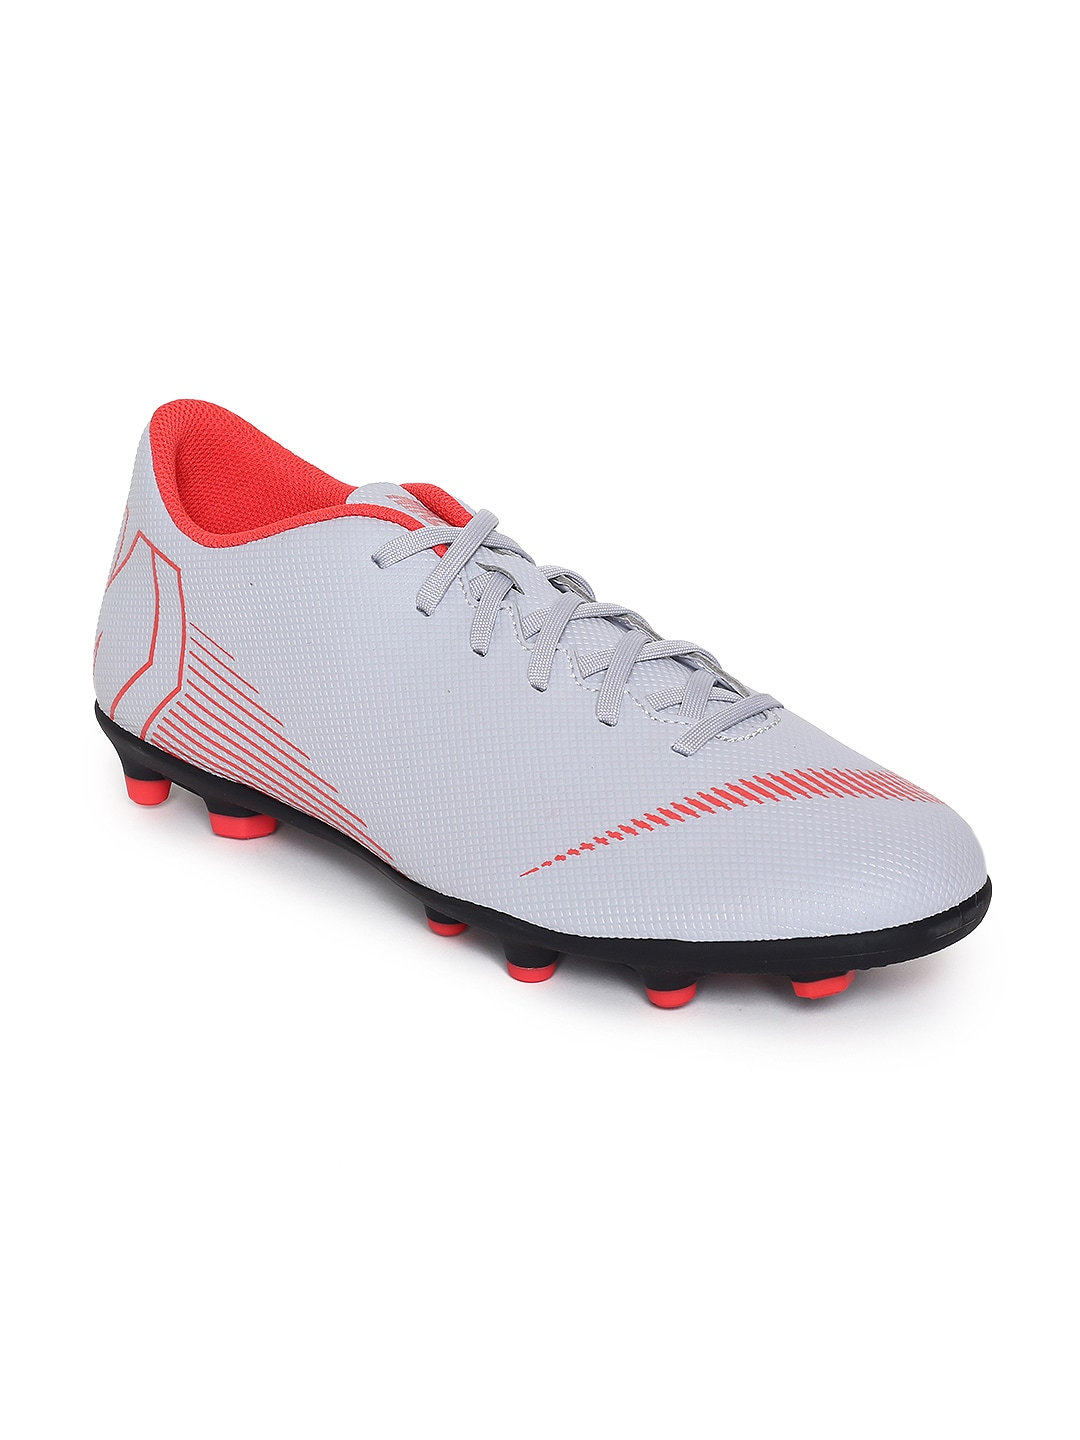 Nike - Shop for Nike Apparels Online in India  8fba1ae849b